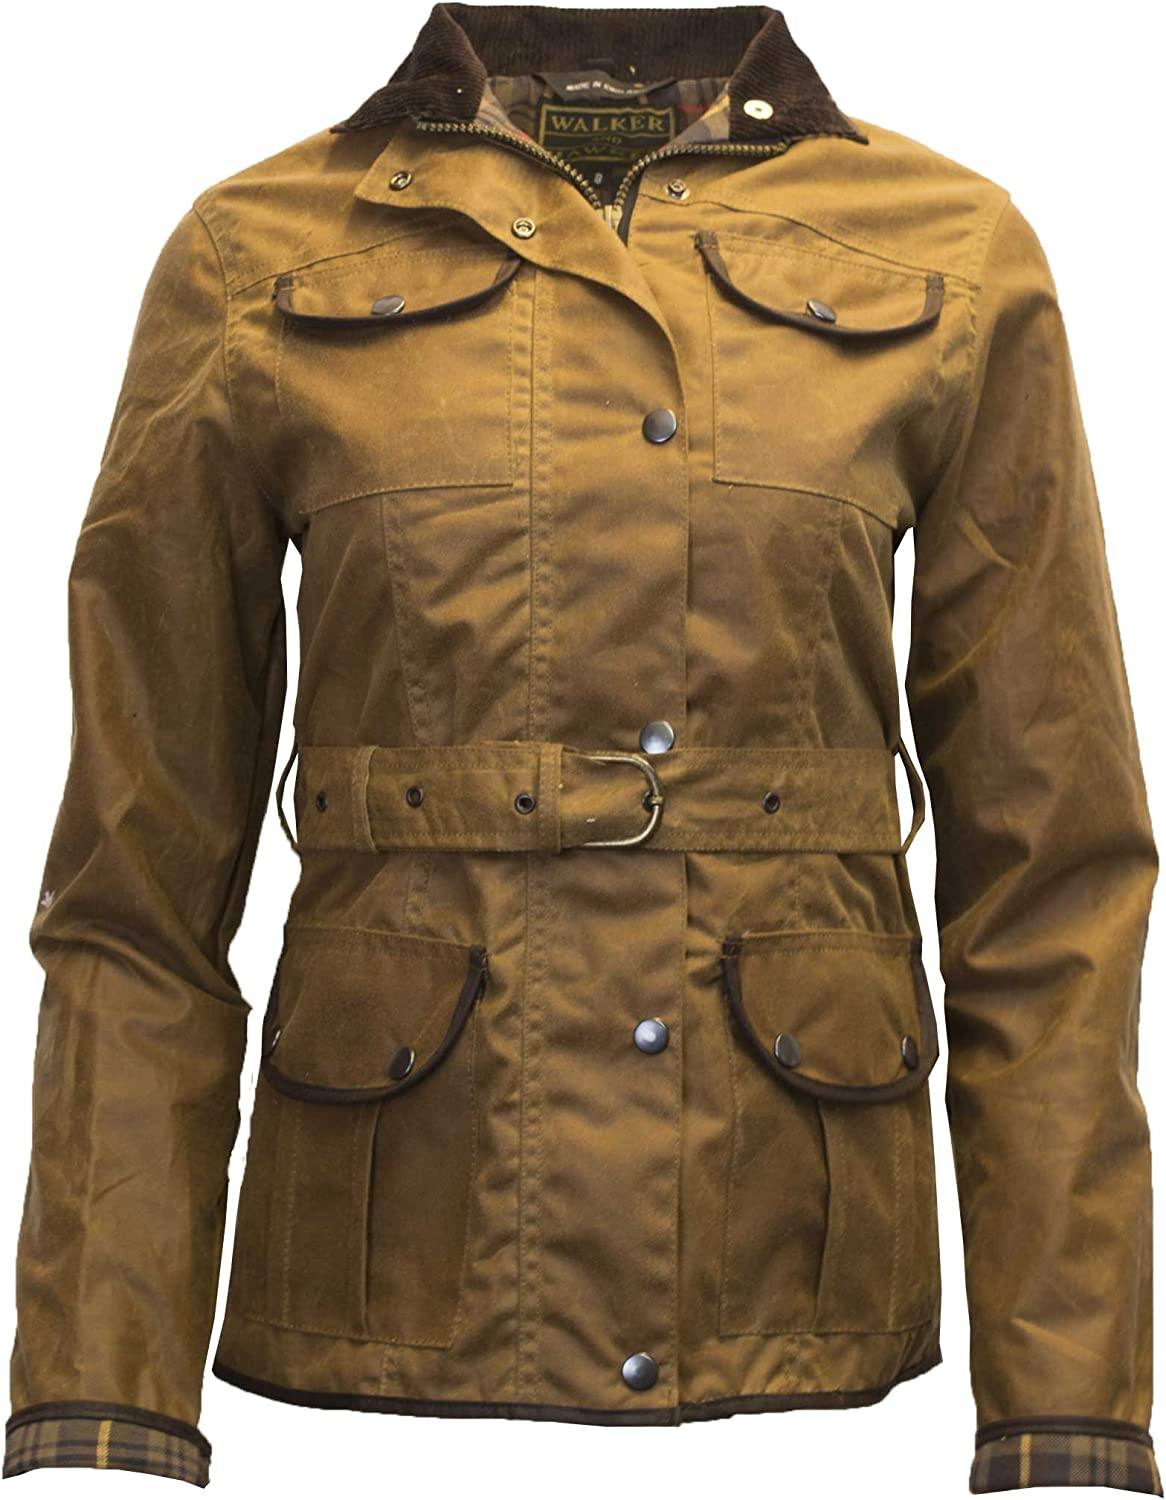 Walker and Hawkes National uniform free shipping Women's Belted Pocket Max 89% OFF Jacket Waxed 4